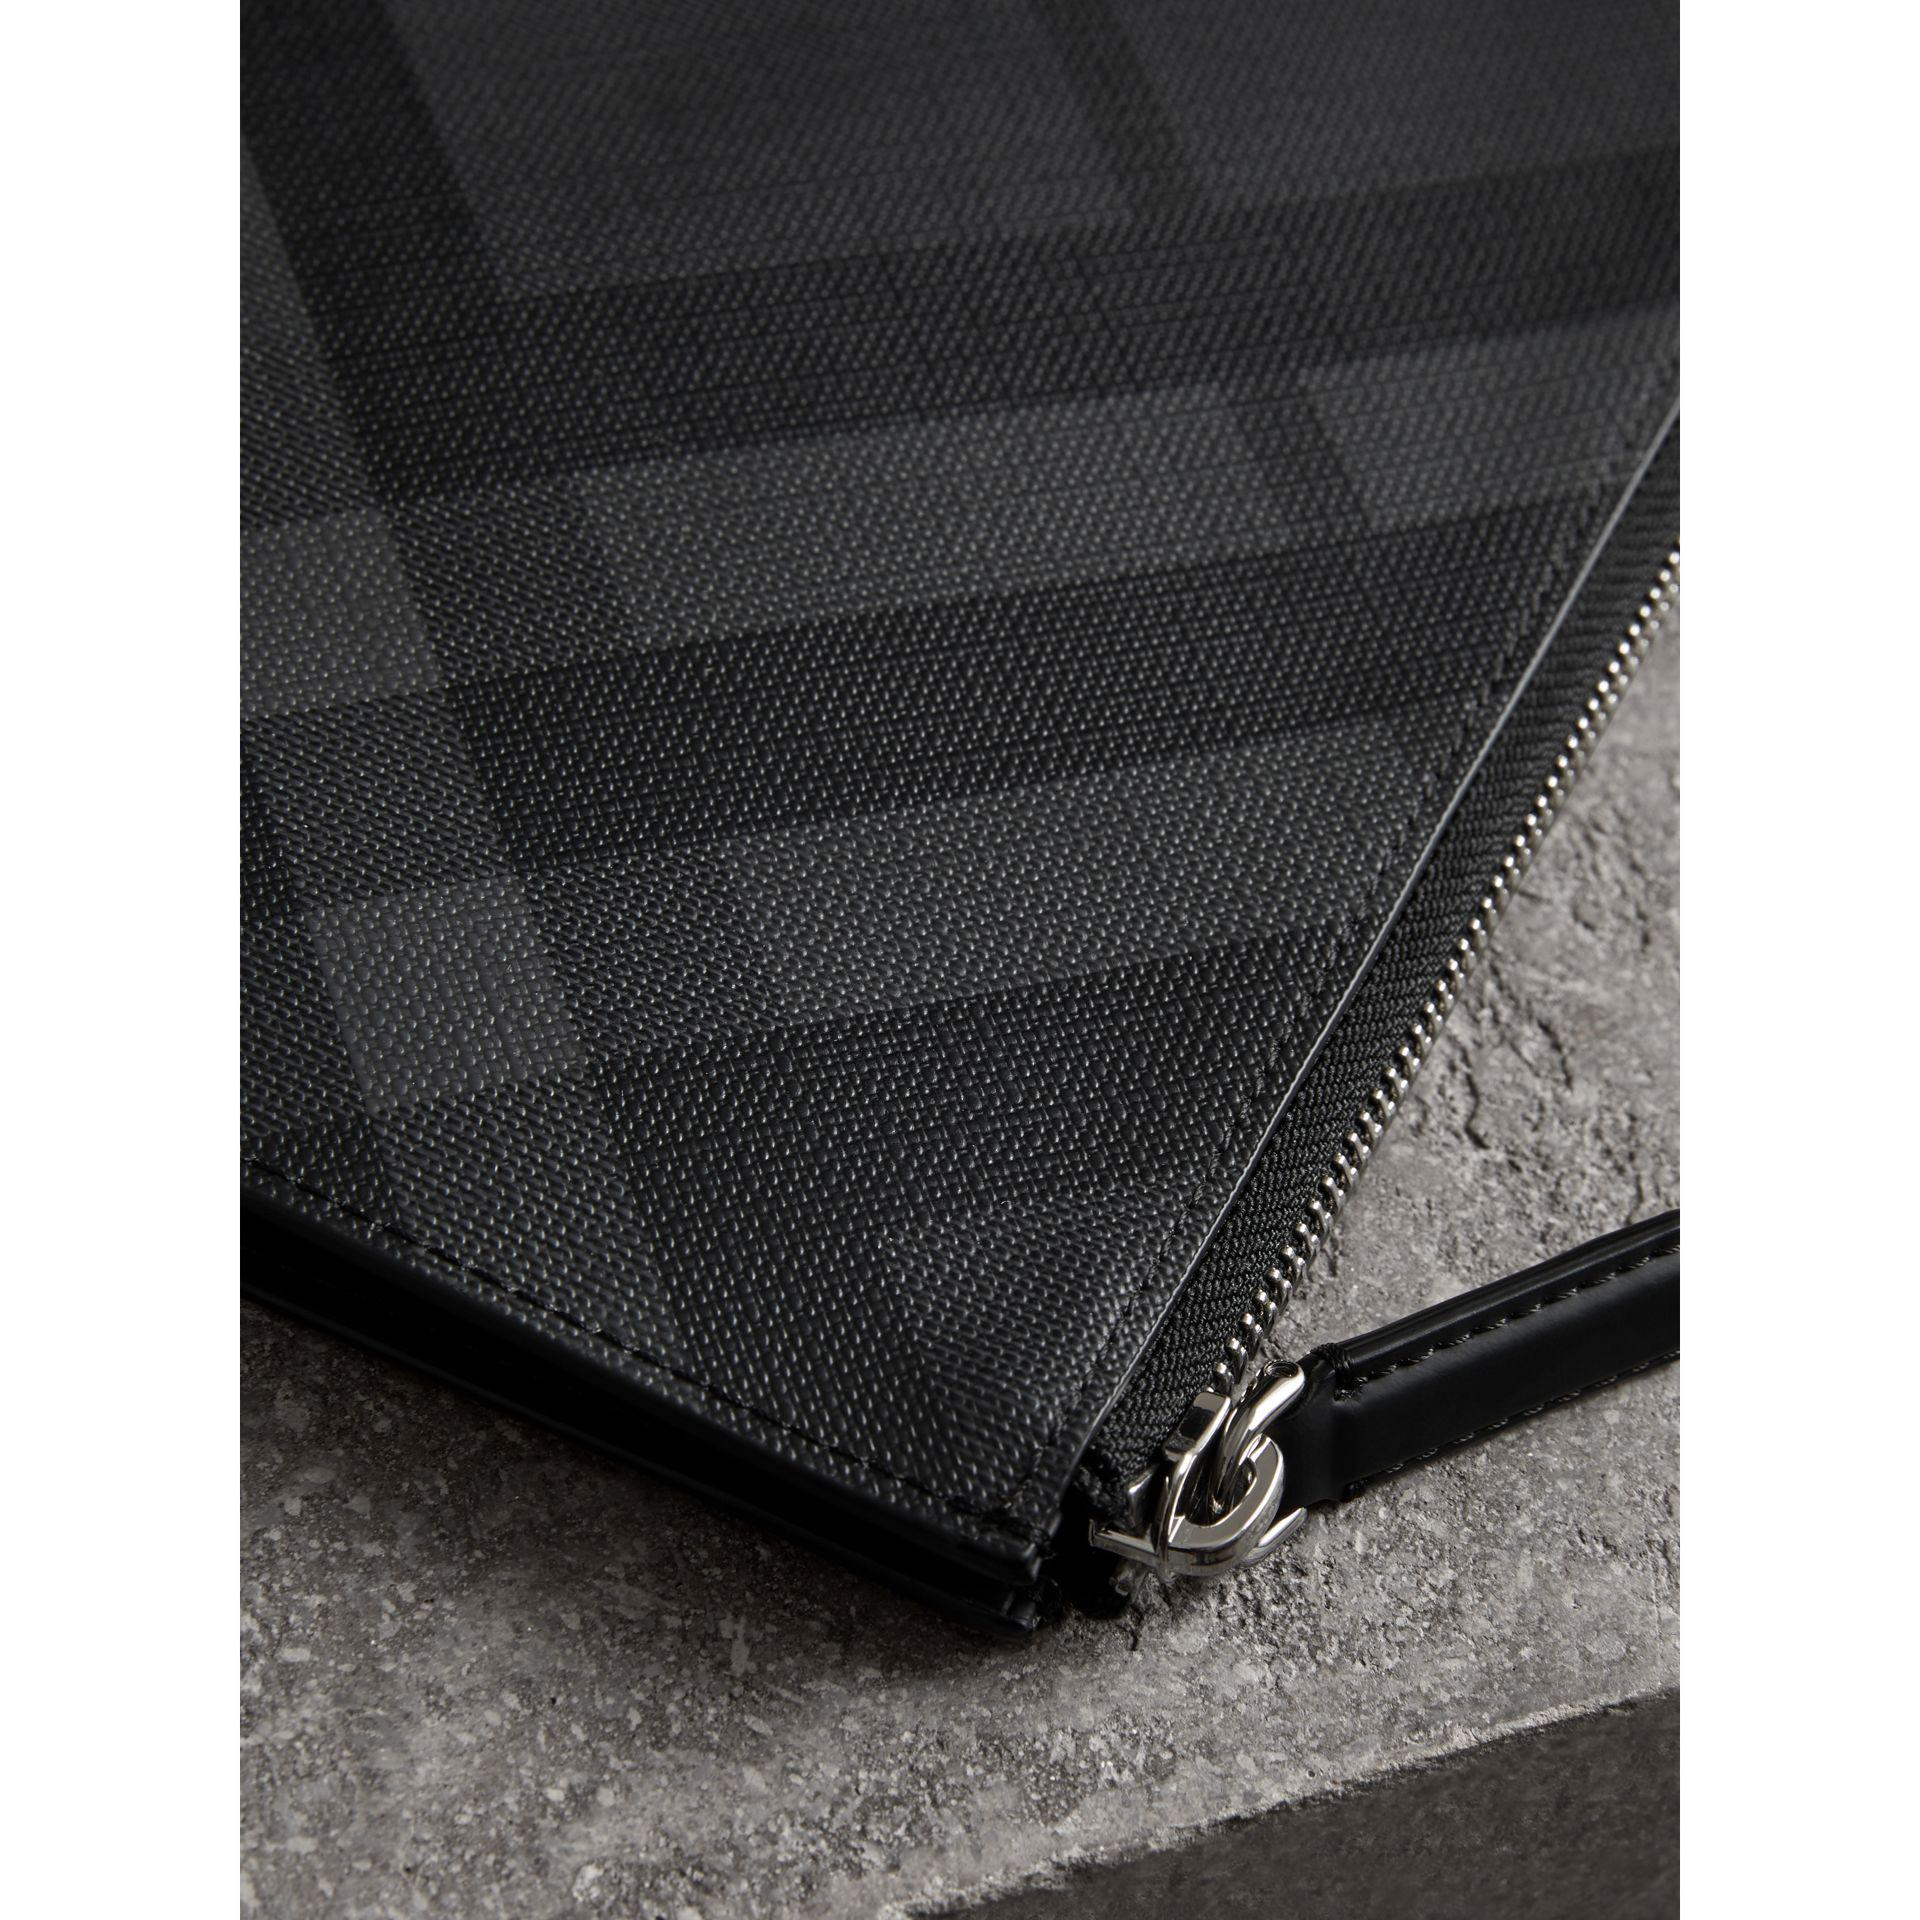 5dc095451afd Lyst - Burberry London Check Zip Pouch in Black for Men